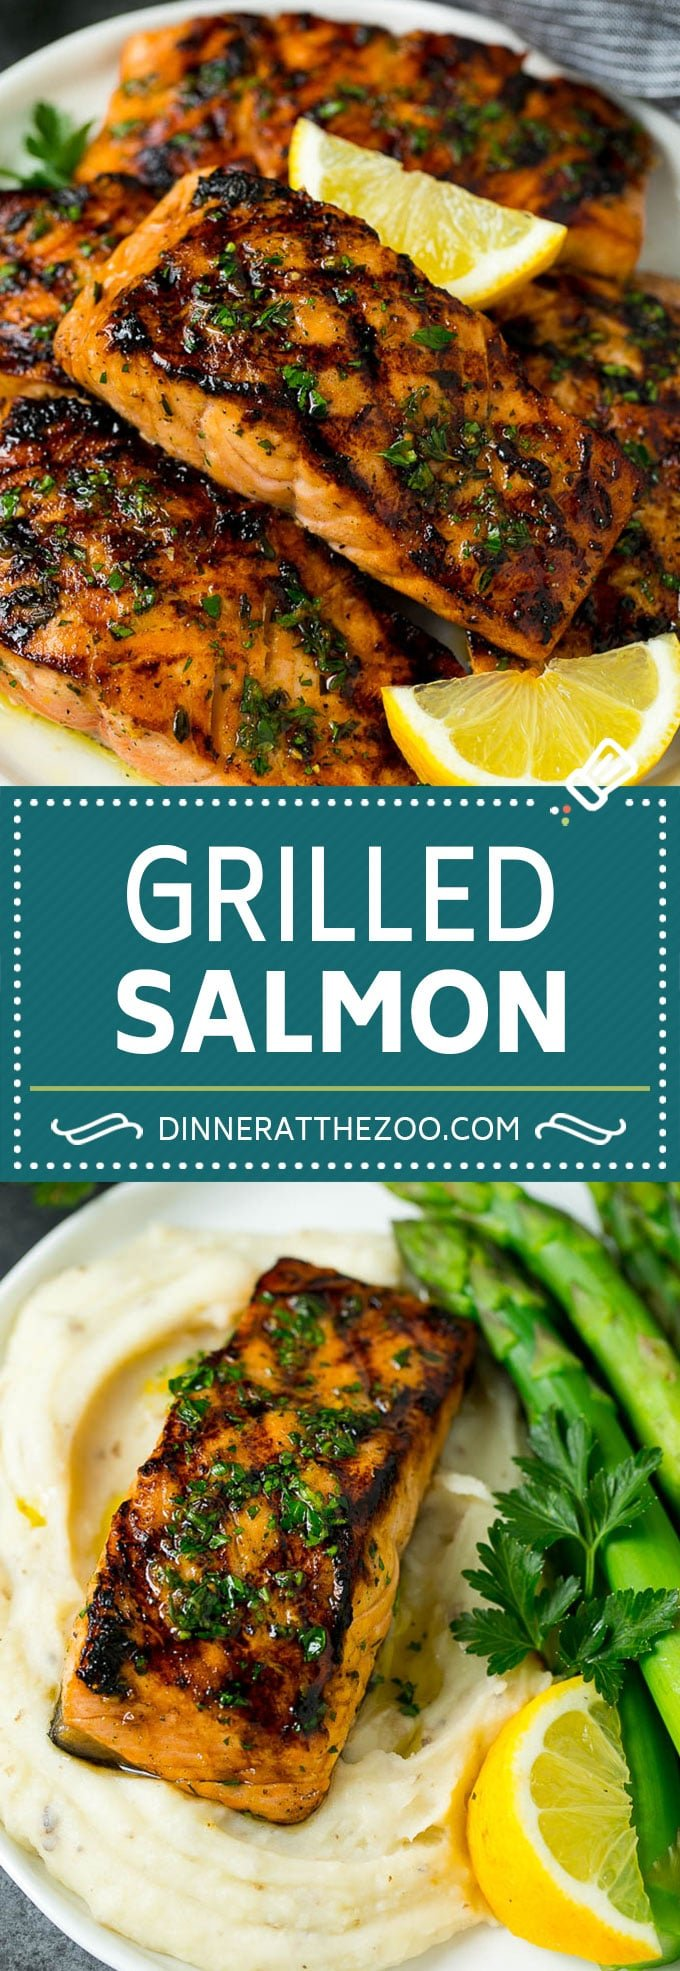 Grilled Salmon Recipe | Marinated Salmon | Healthy Salmon Recipe #salmon #grilling #seafood #marinade #dinner #dinneratthezoo